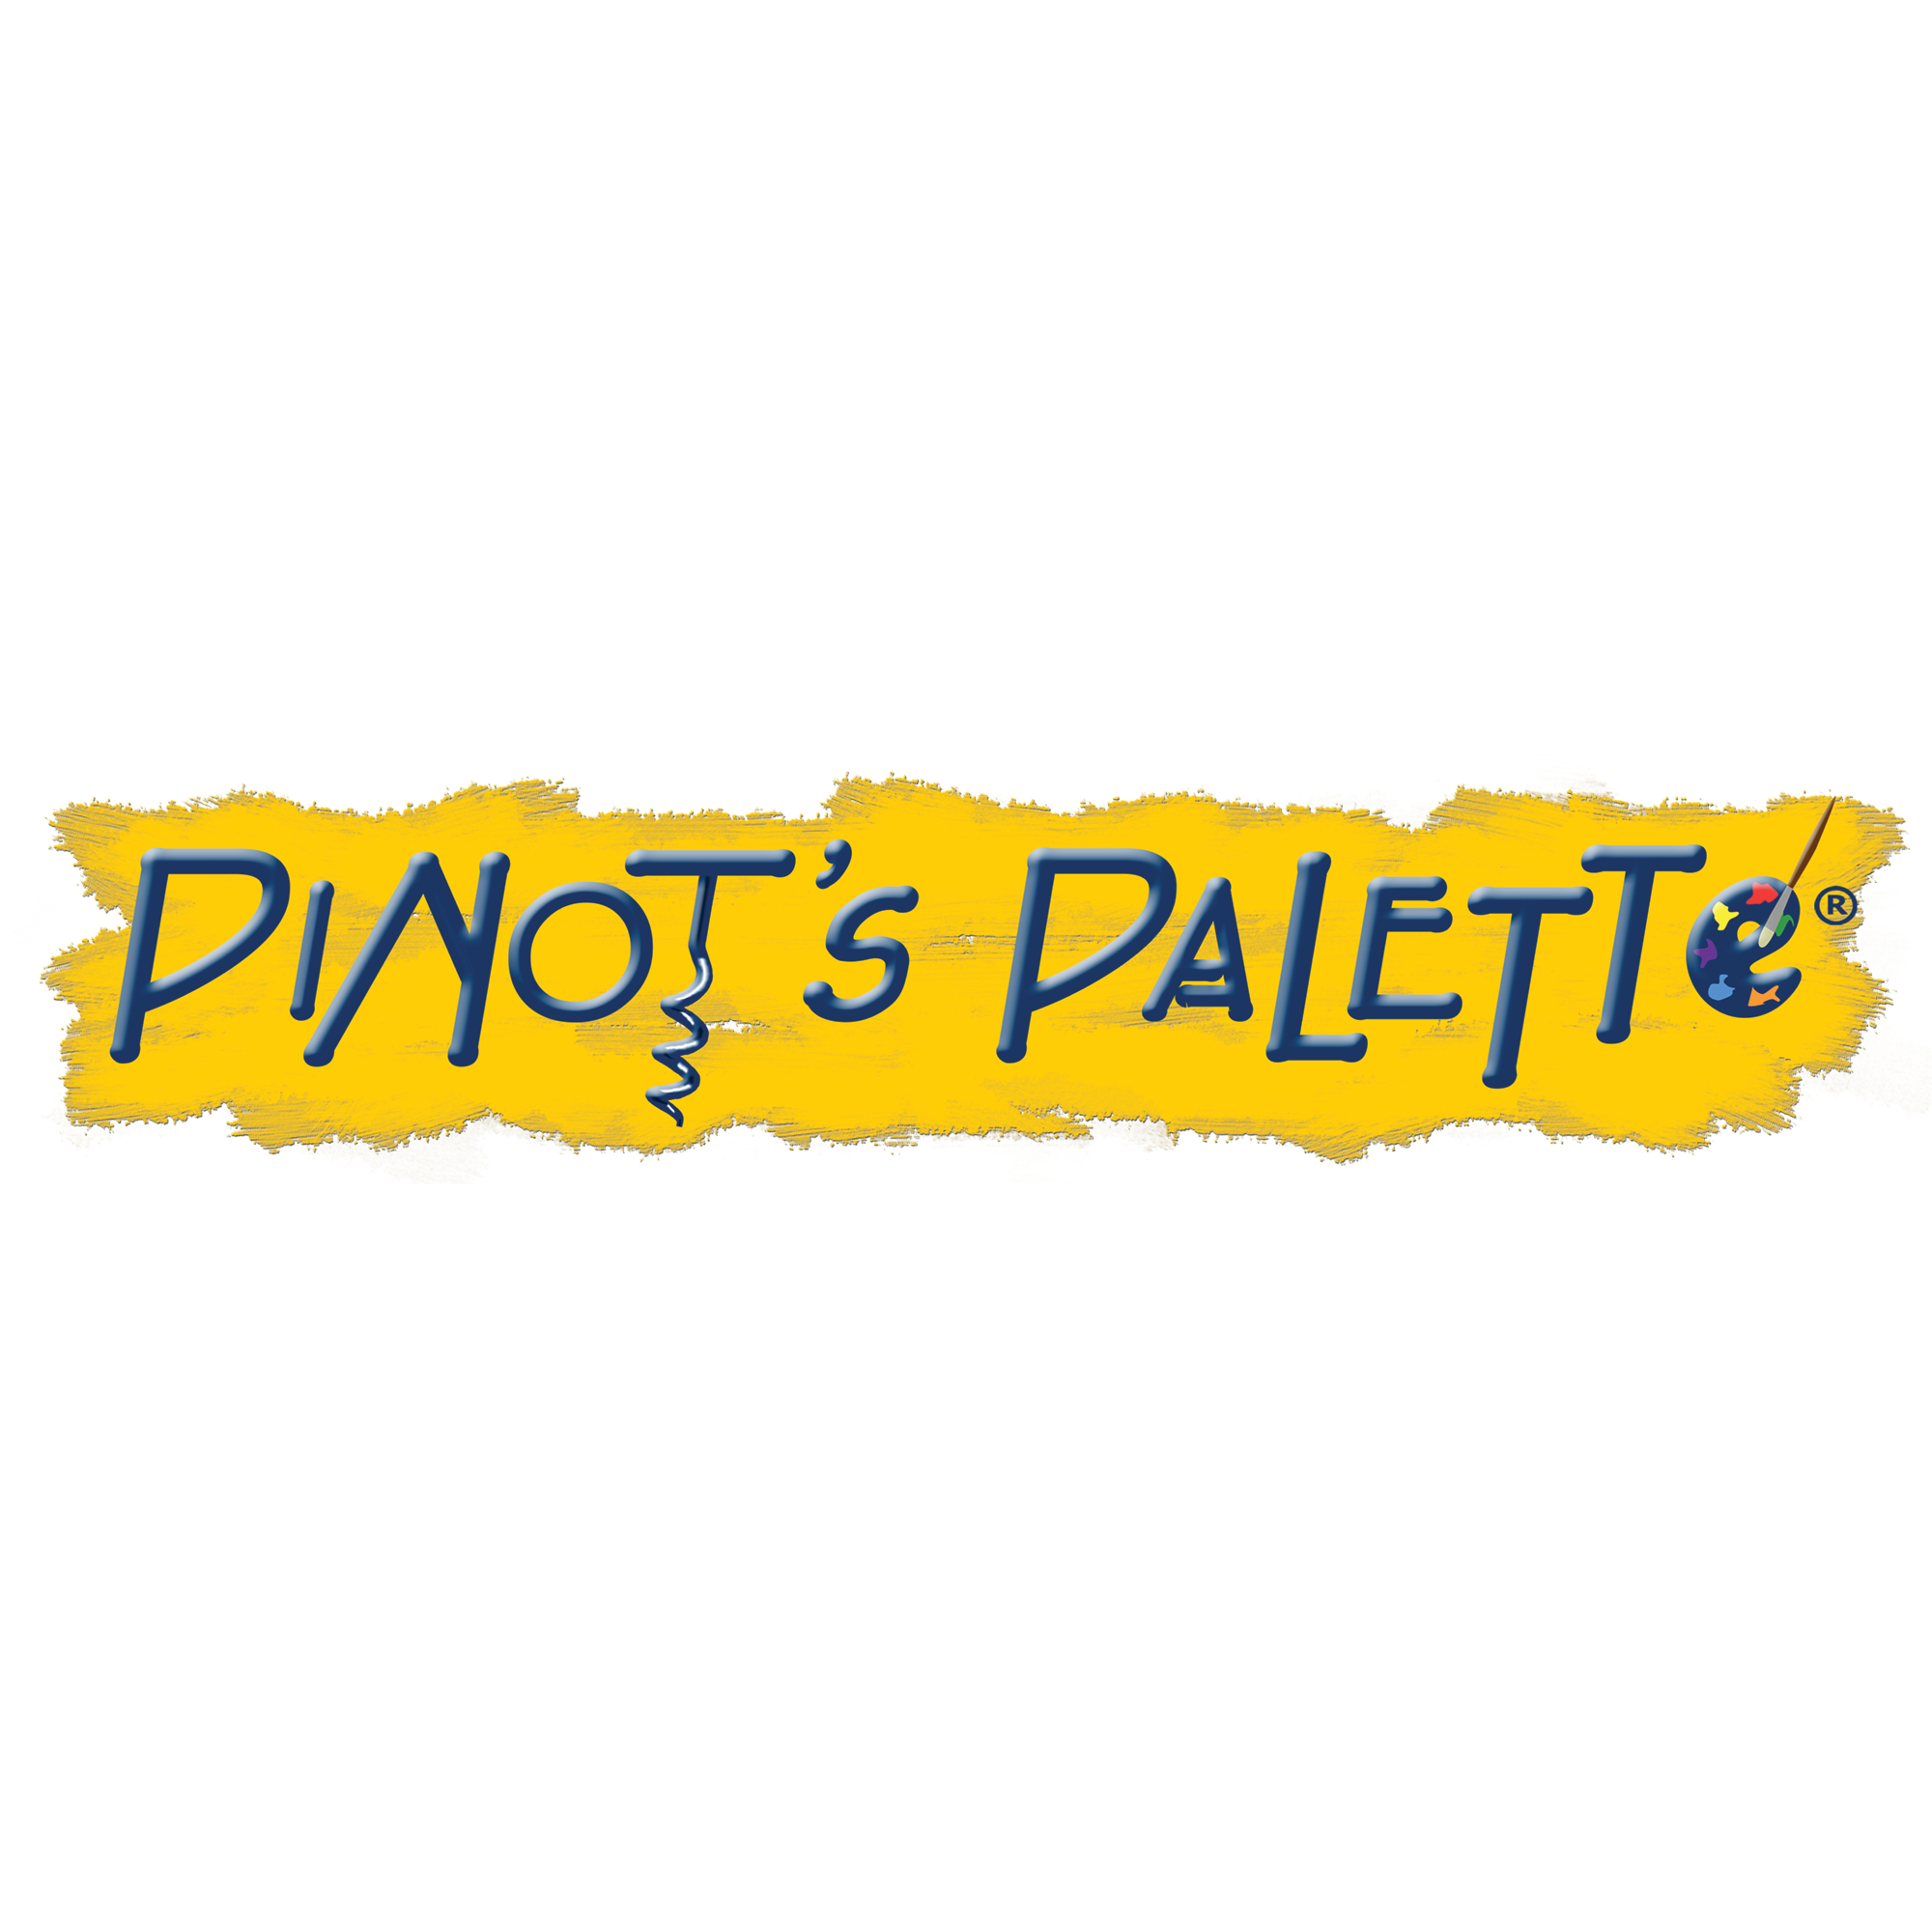 Pinot palette coupon code